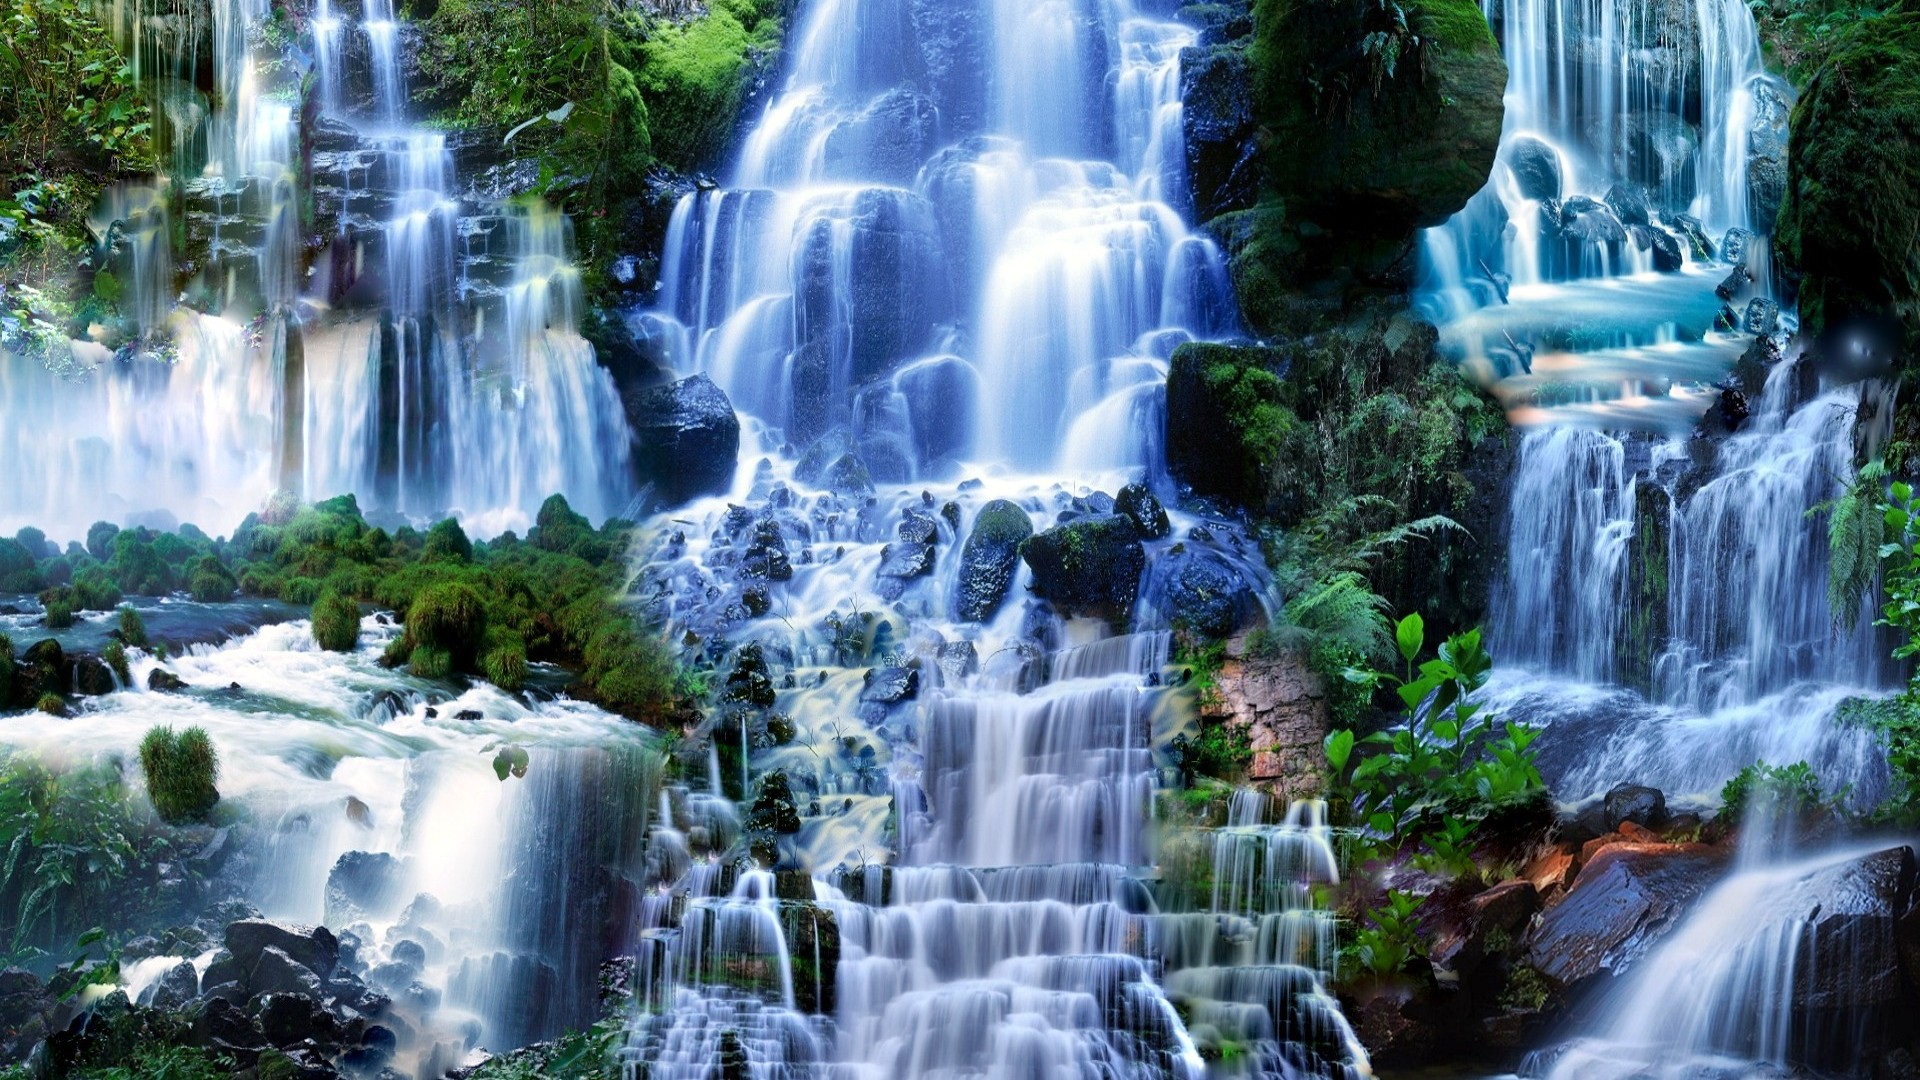 Rainbow Falls Hawaii Wallpaper Waterfall In The Forest Wallpapers And Images Wallpapers